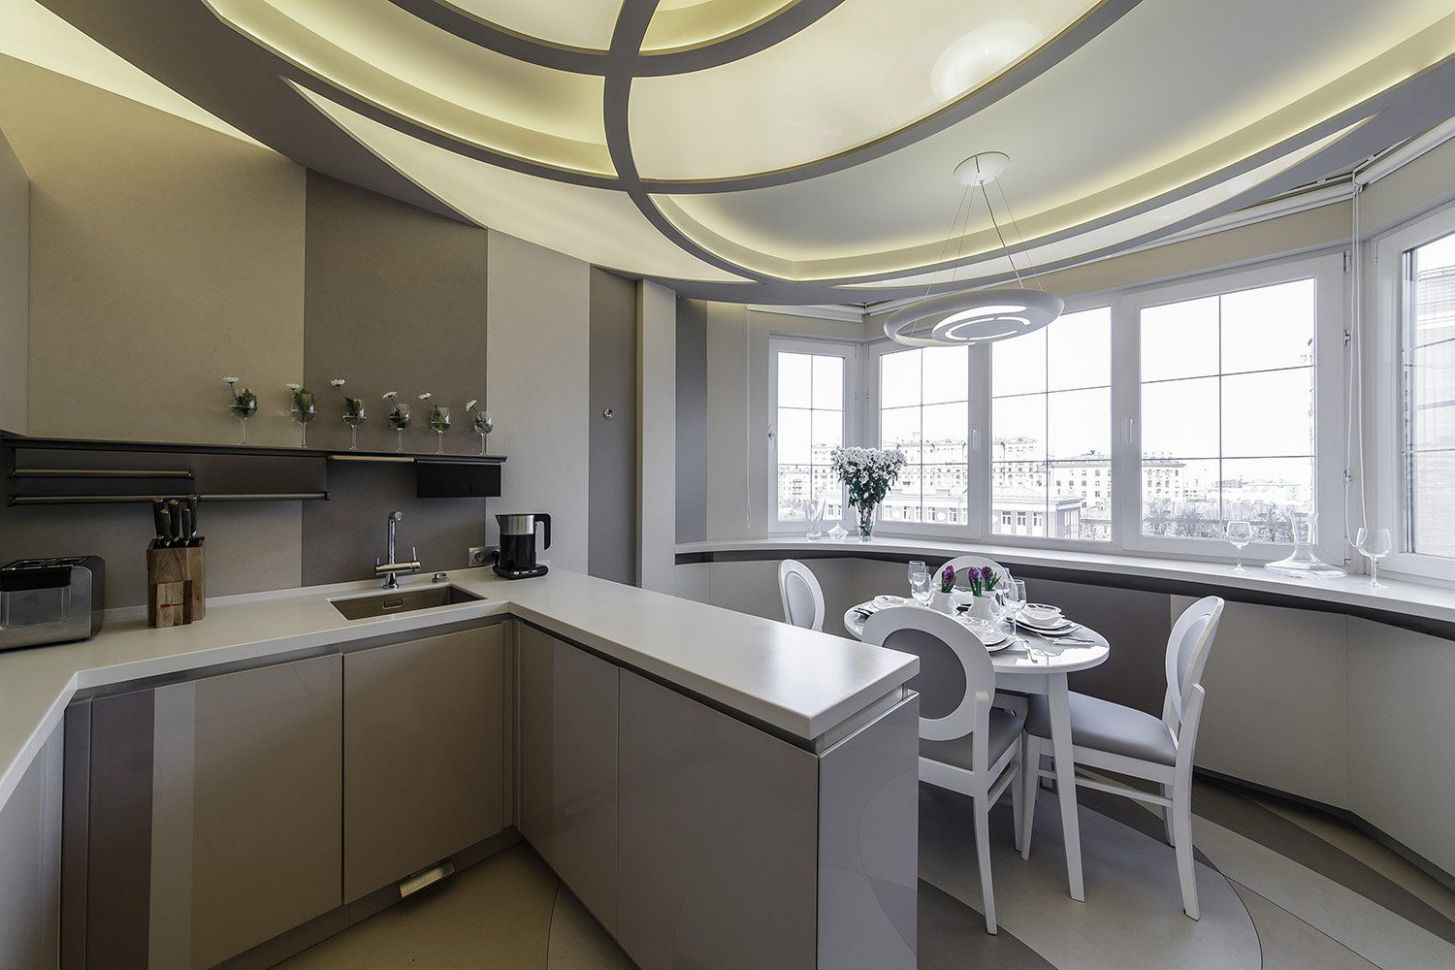 Kitchen Combined with Loggia or Balcony Design Ideas - balcony kitchen ideas